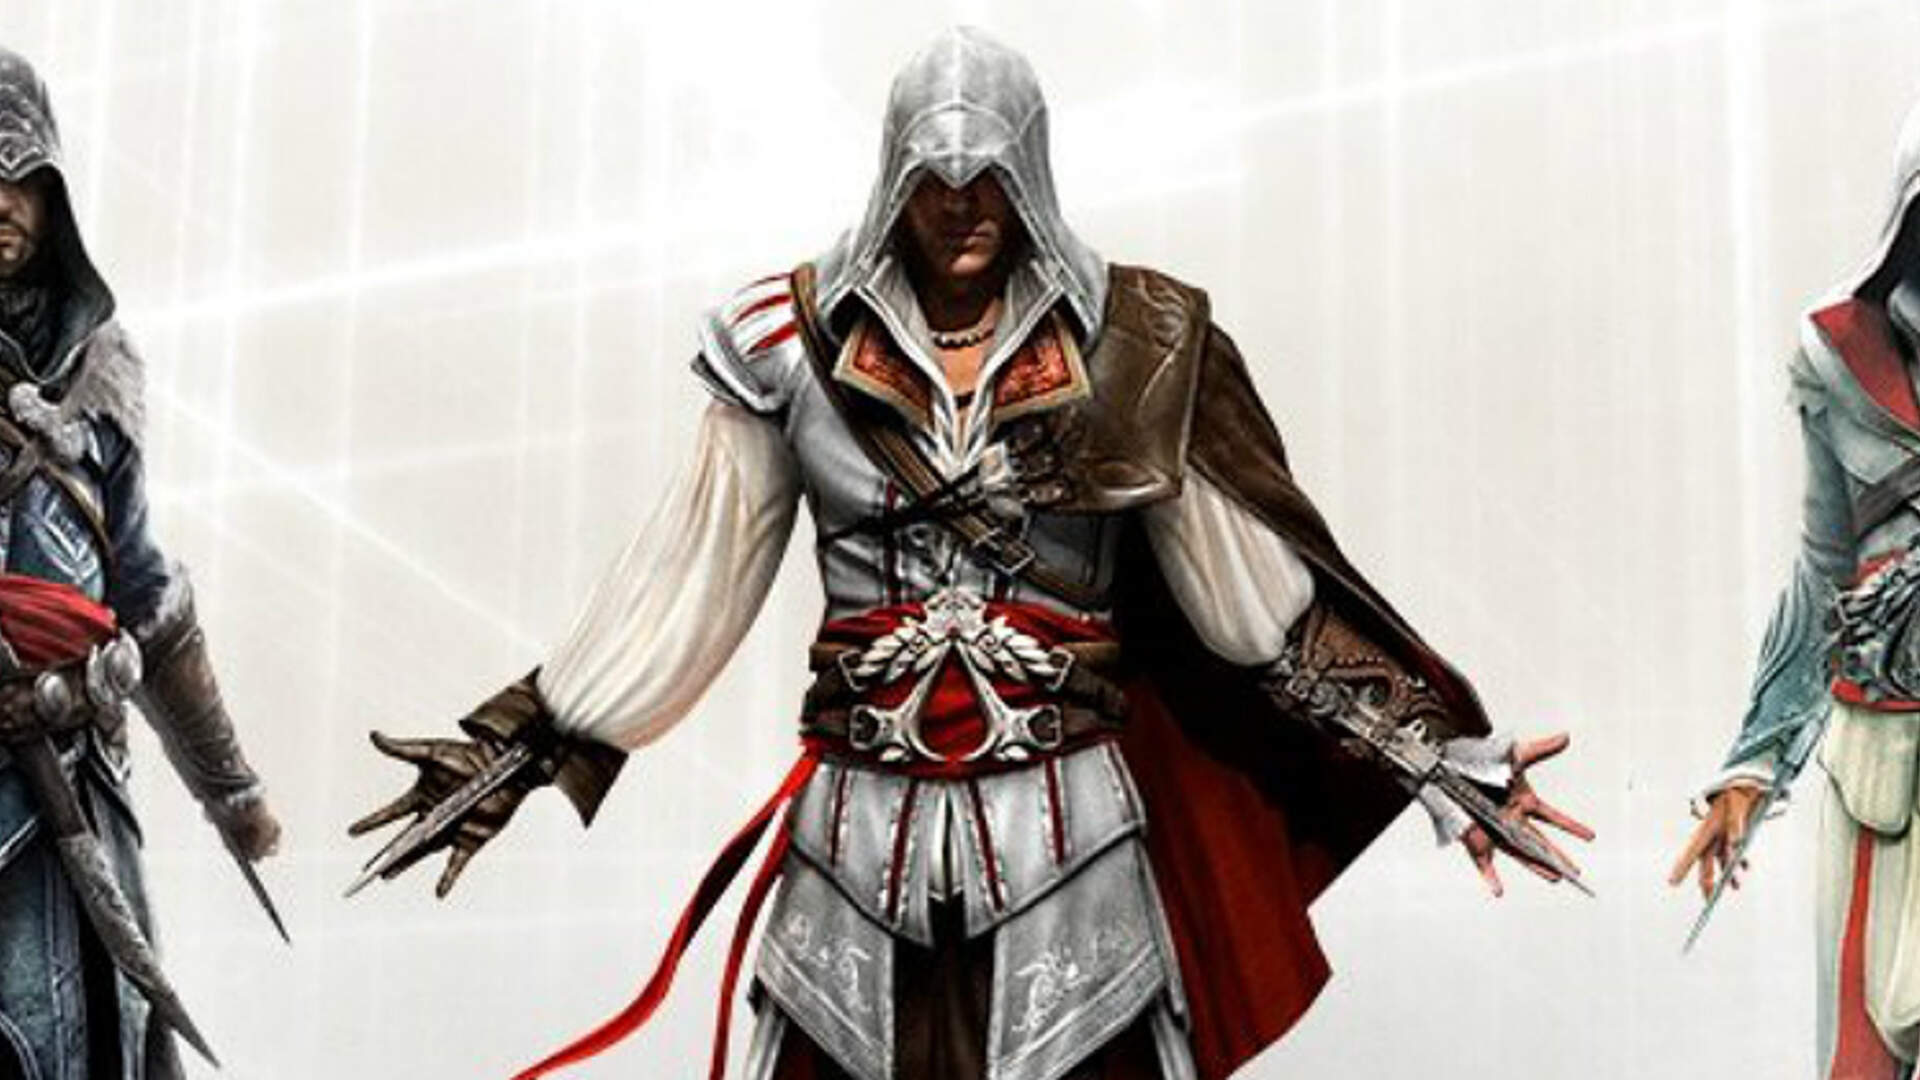 Assassin S Creed The Ezio Collection Brings The Best Assassin To Ps4 And Xbox One Usgamer